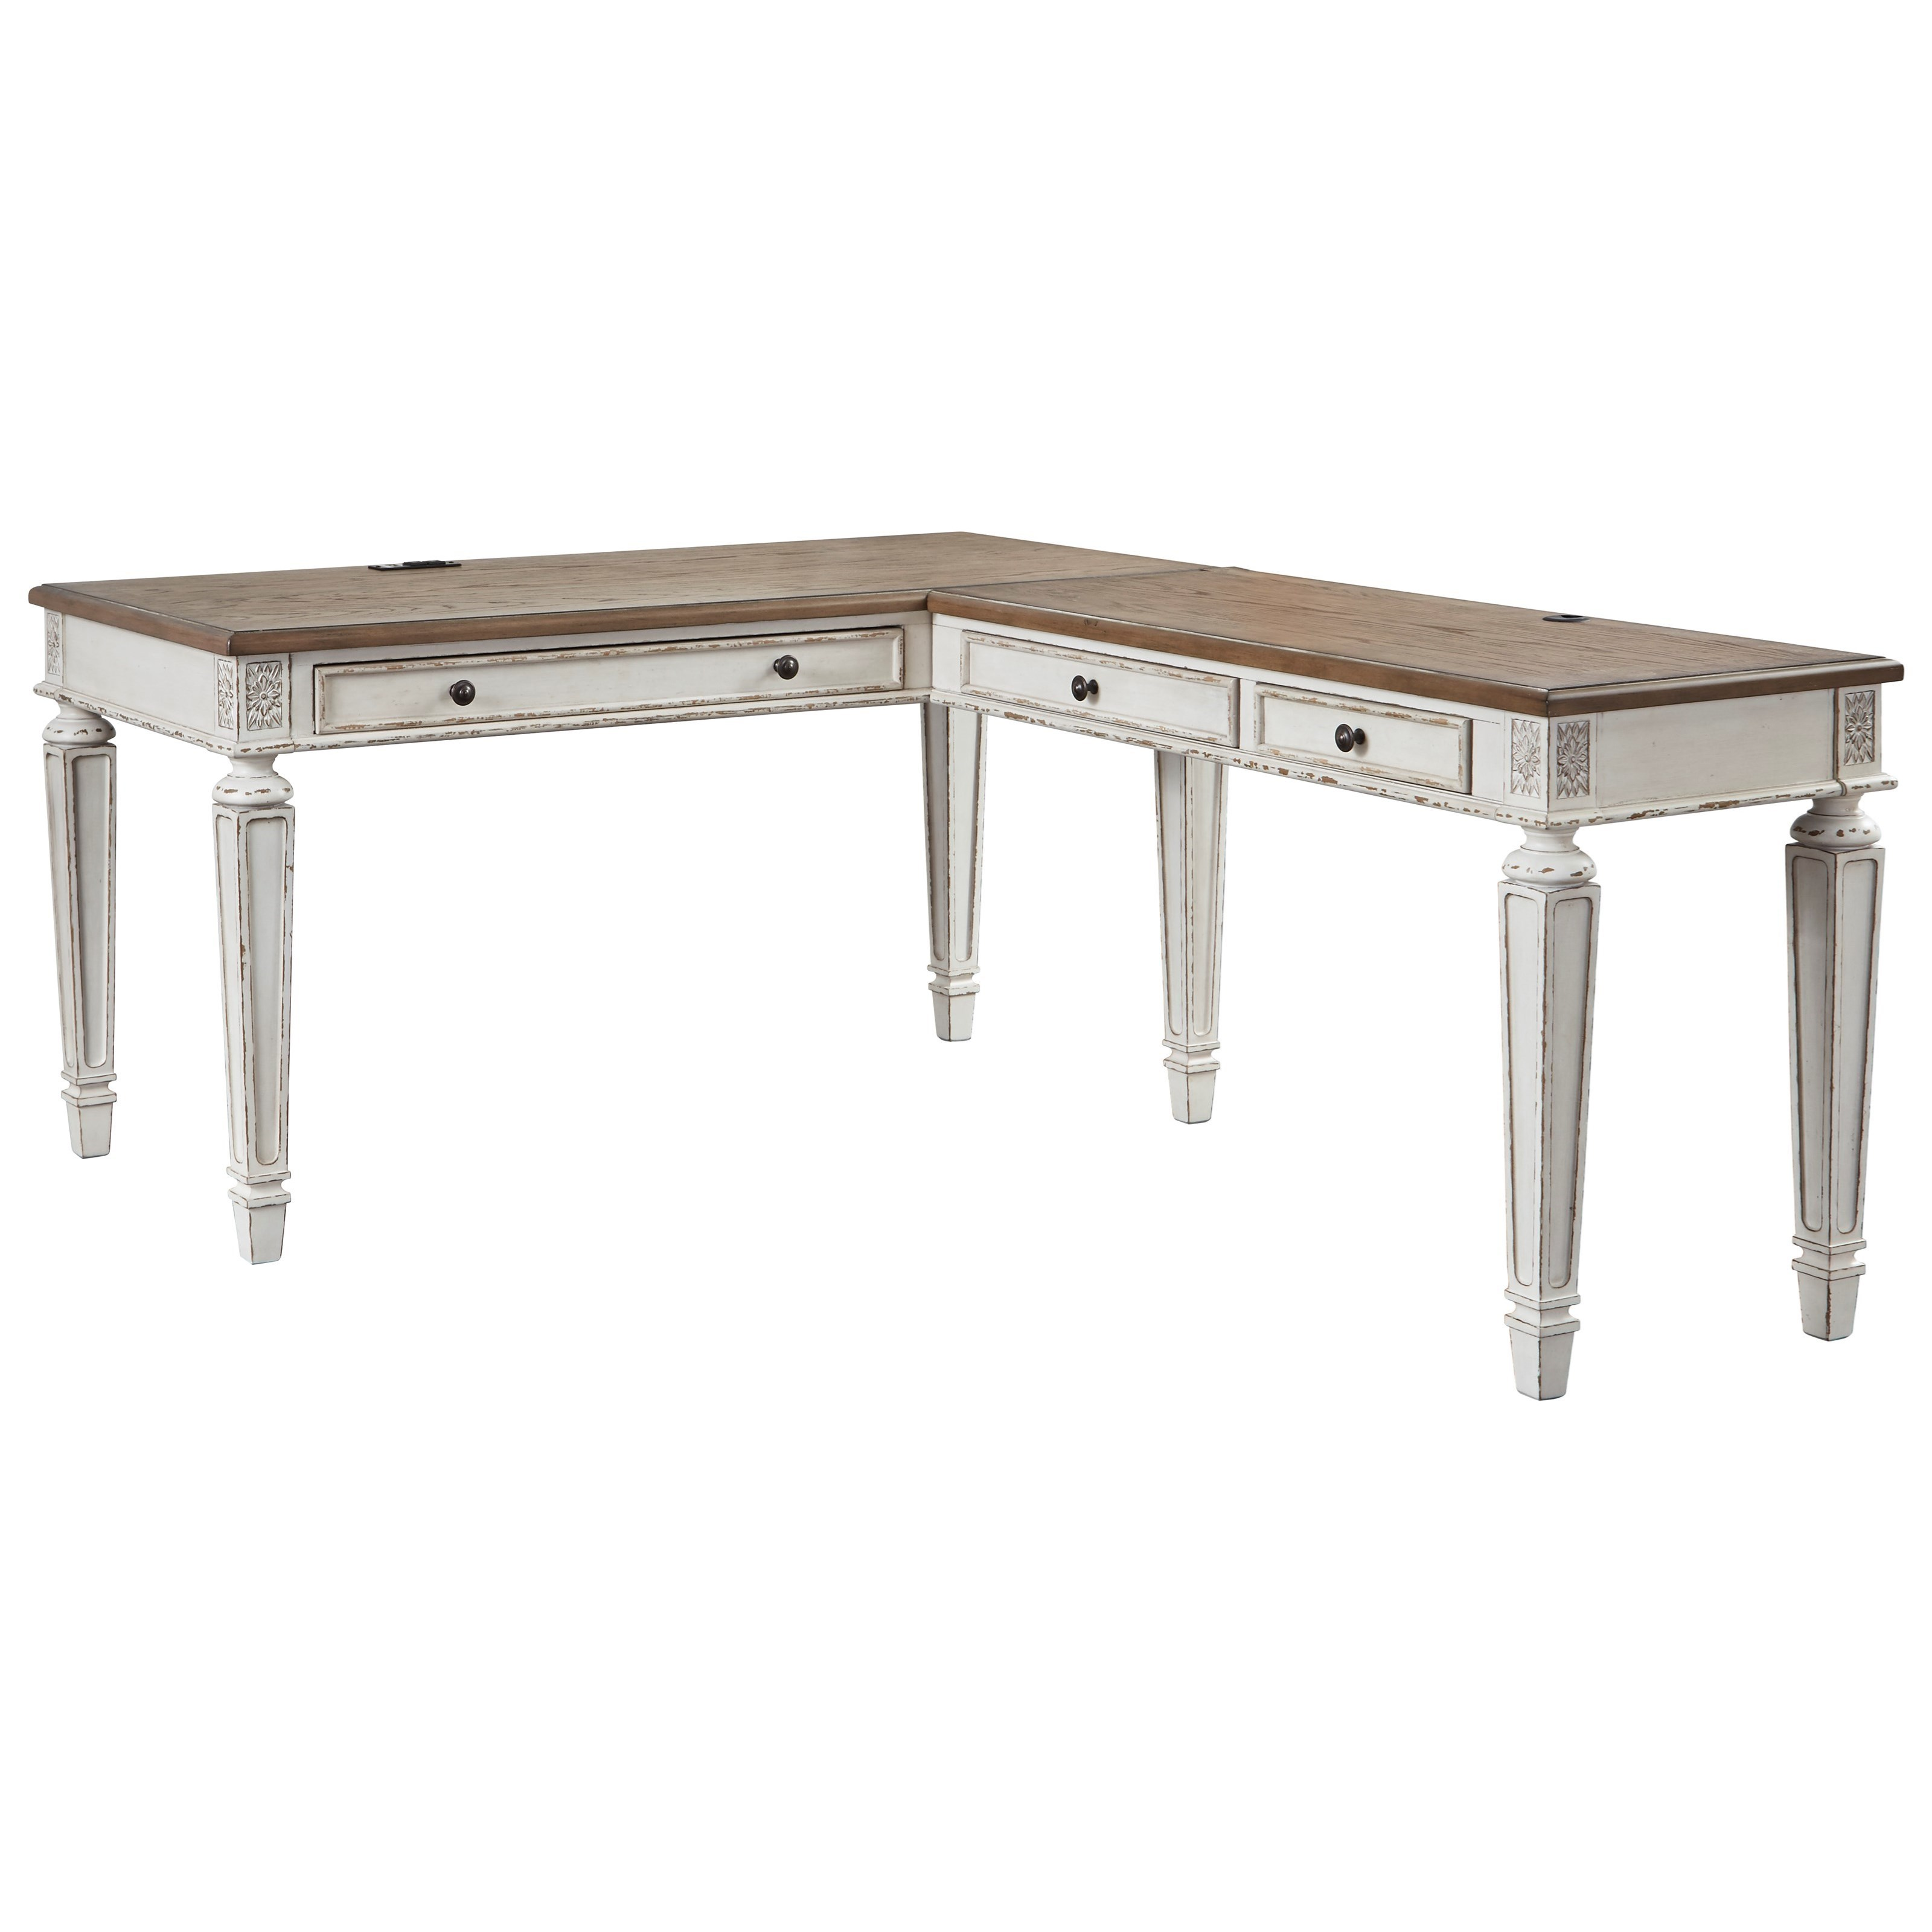 Realyn L Shape Desk by Signature Design by Ashley at Zak's Warehouse Clearance Center